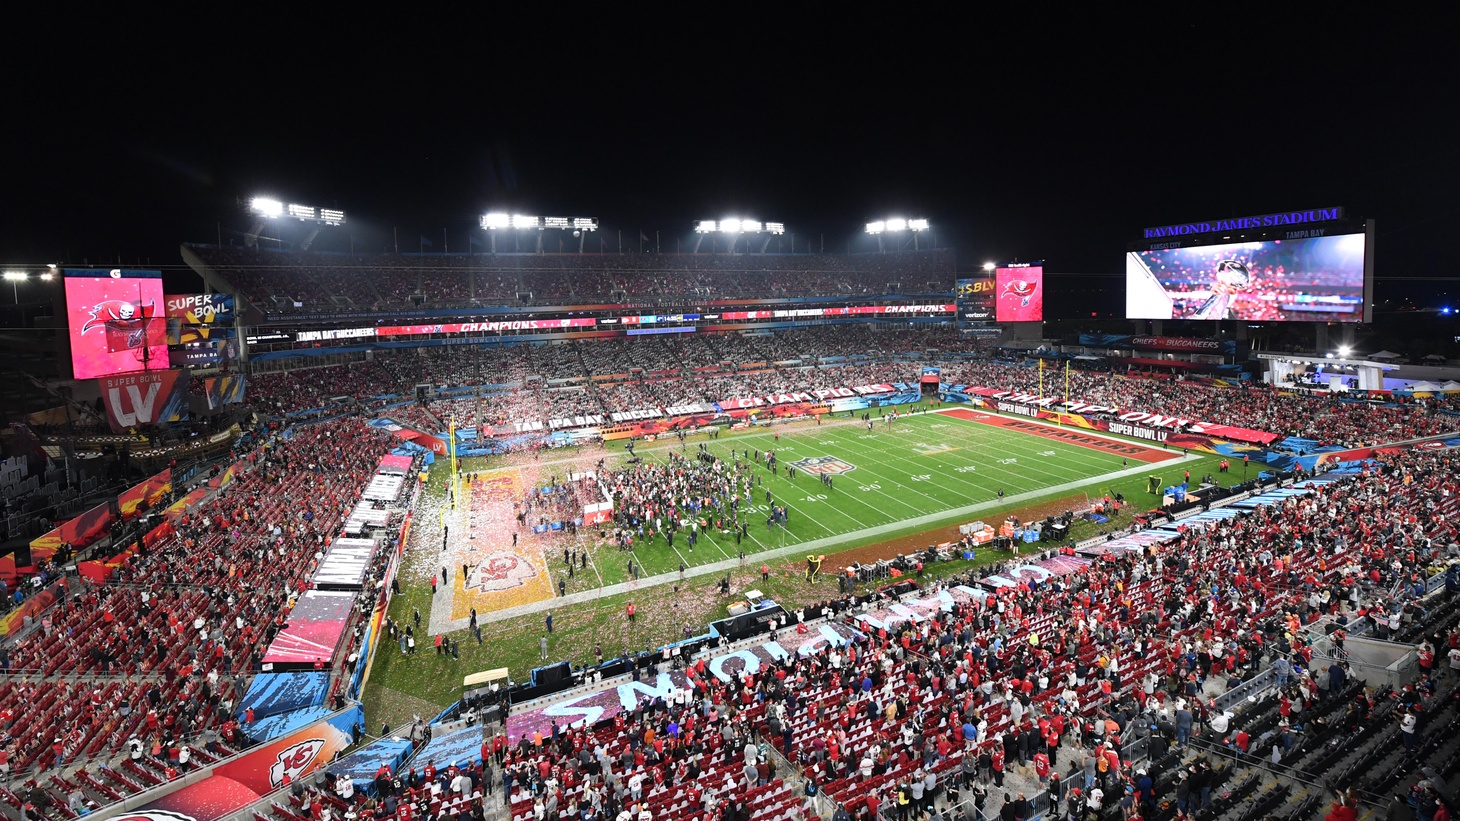 Tampa Bay Buccaneers players celebrate on the field after defeating the Kansas City Chiefs in Super Bowl LV at Raymond James Stadium. Feb 7, 2021. Tampa, FL, USA.